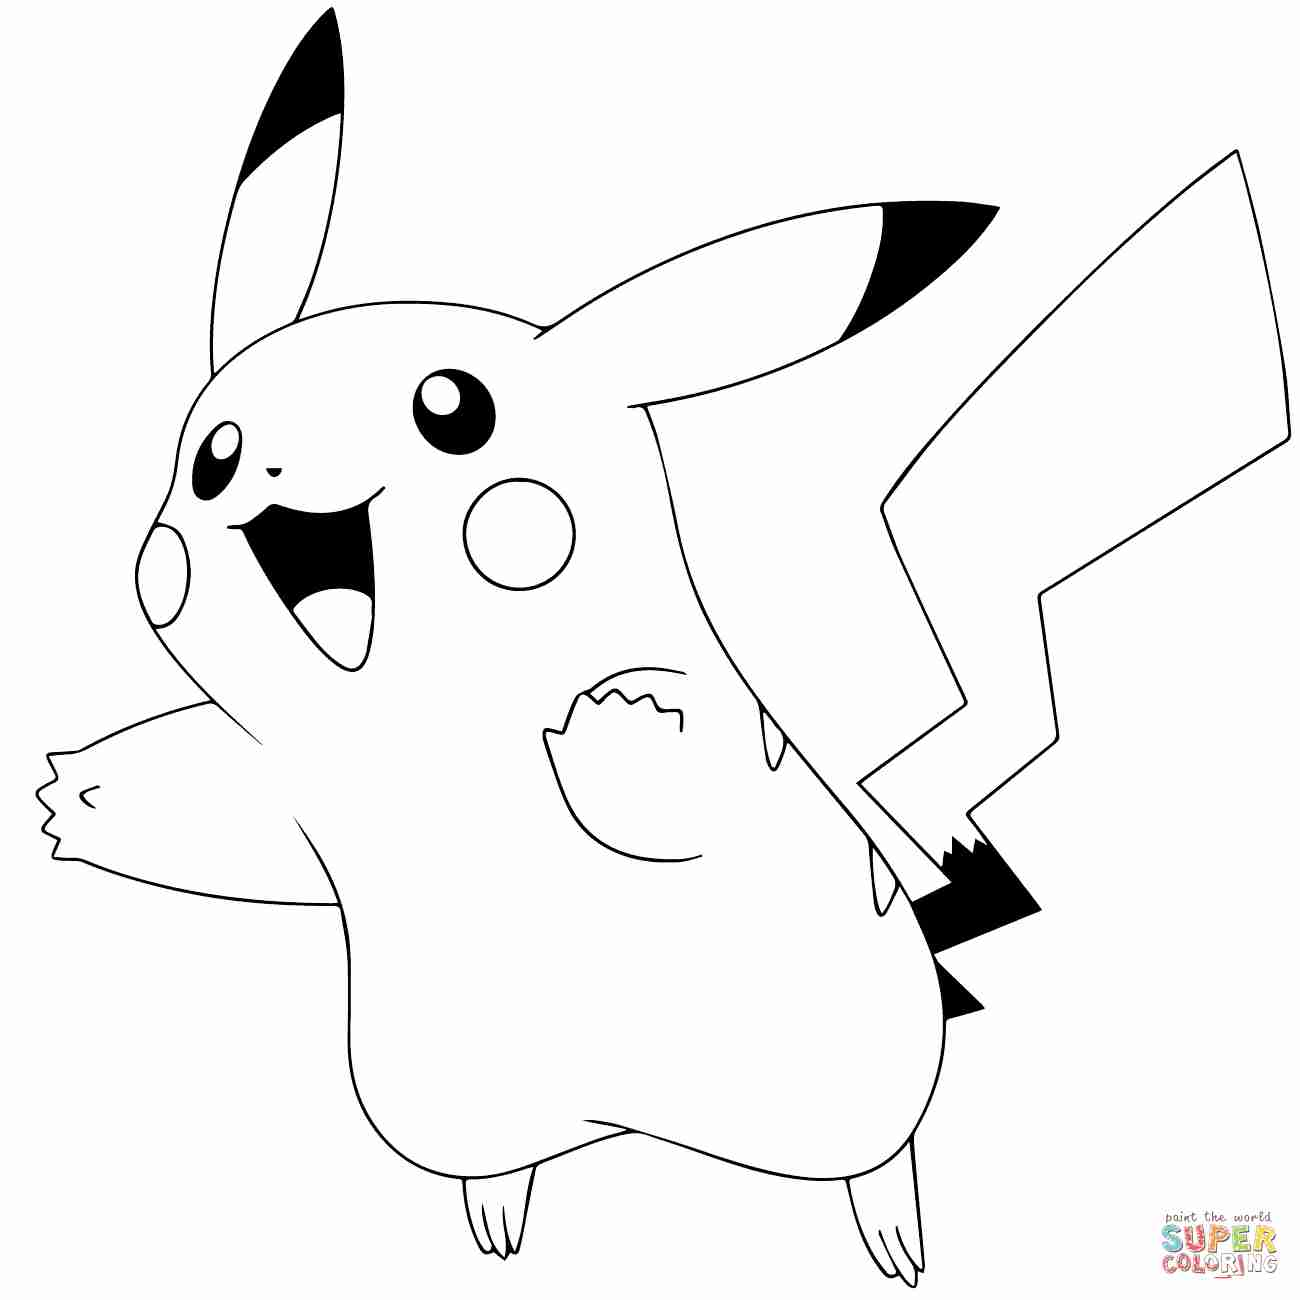 pikachu cute pokemon coloring pages colormon look at how cute pikachu is all dressed up for pokemon pages pikachu coloring cute